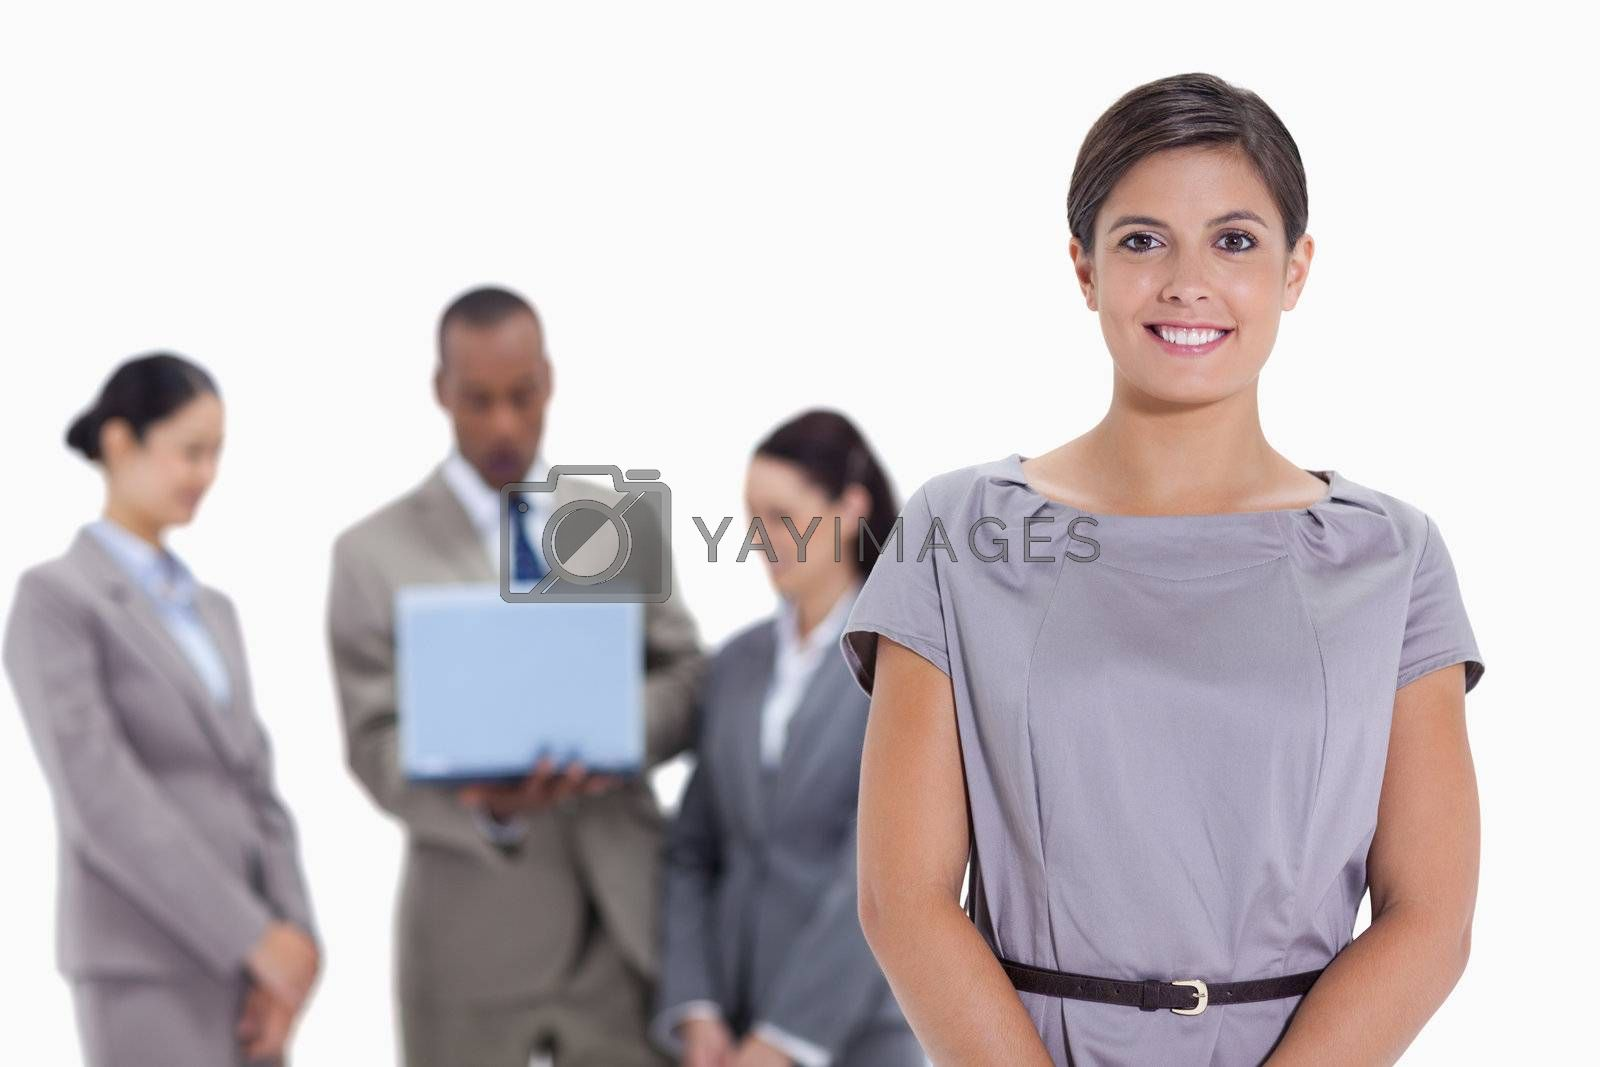 Woman business team in the background watching a laptop against white background